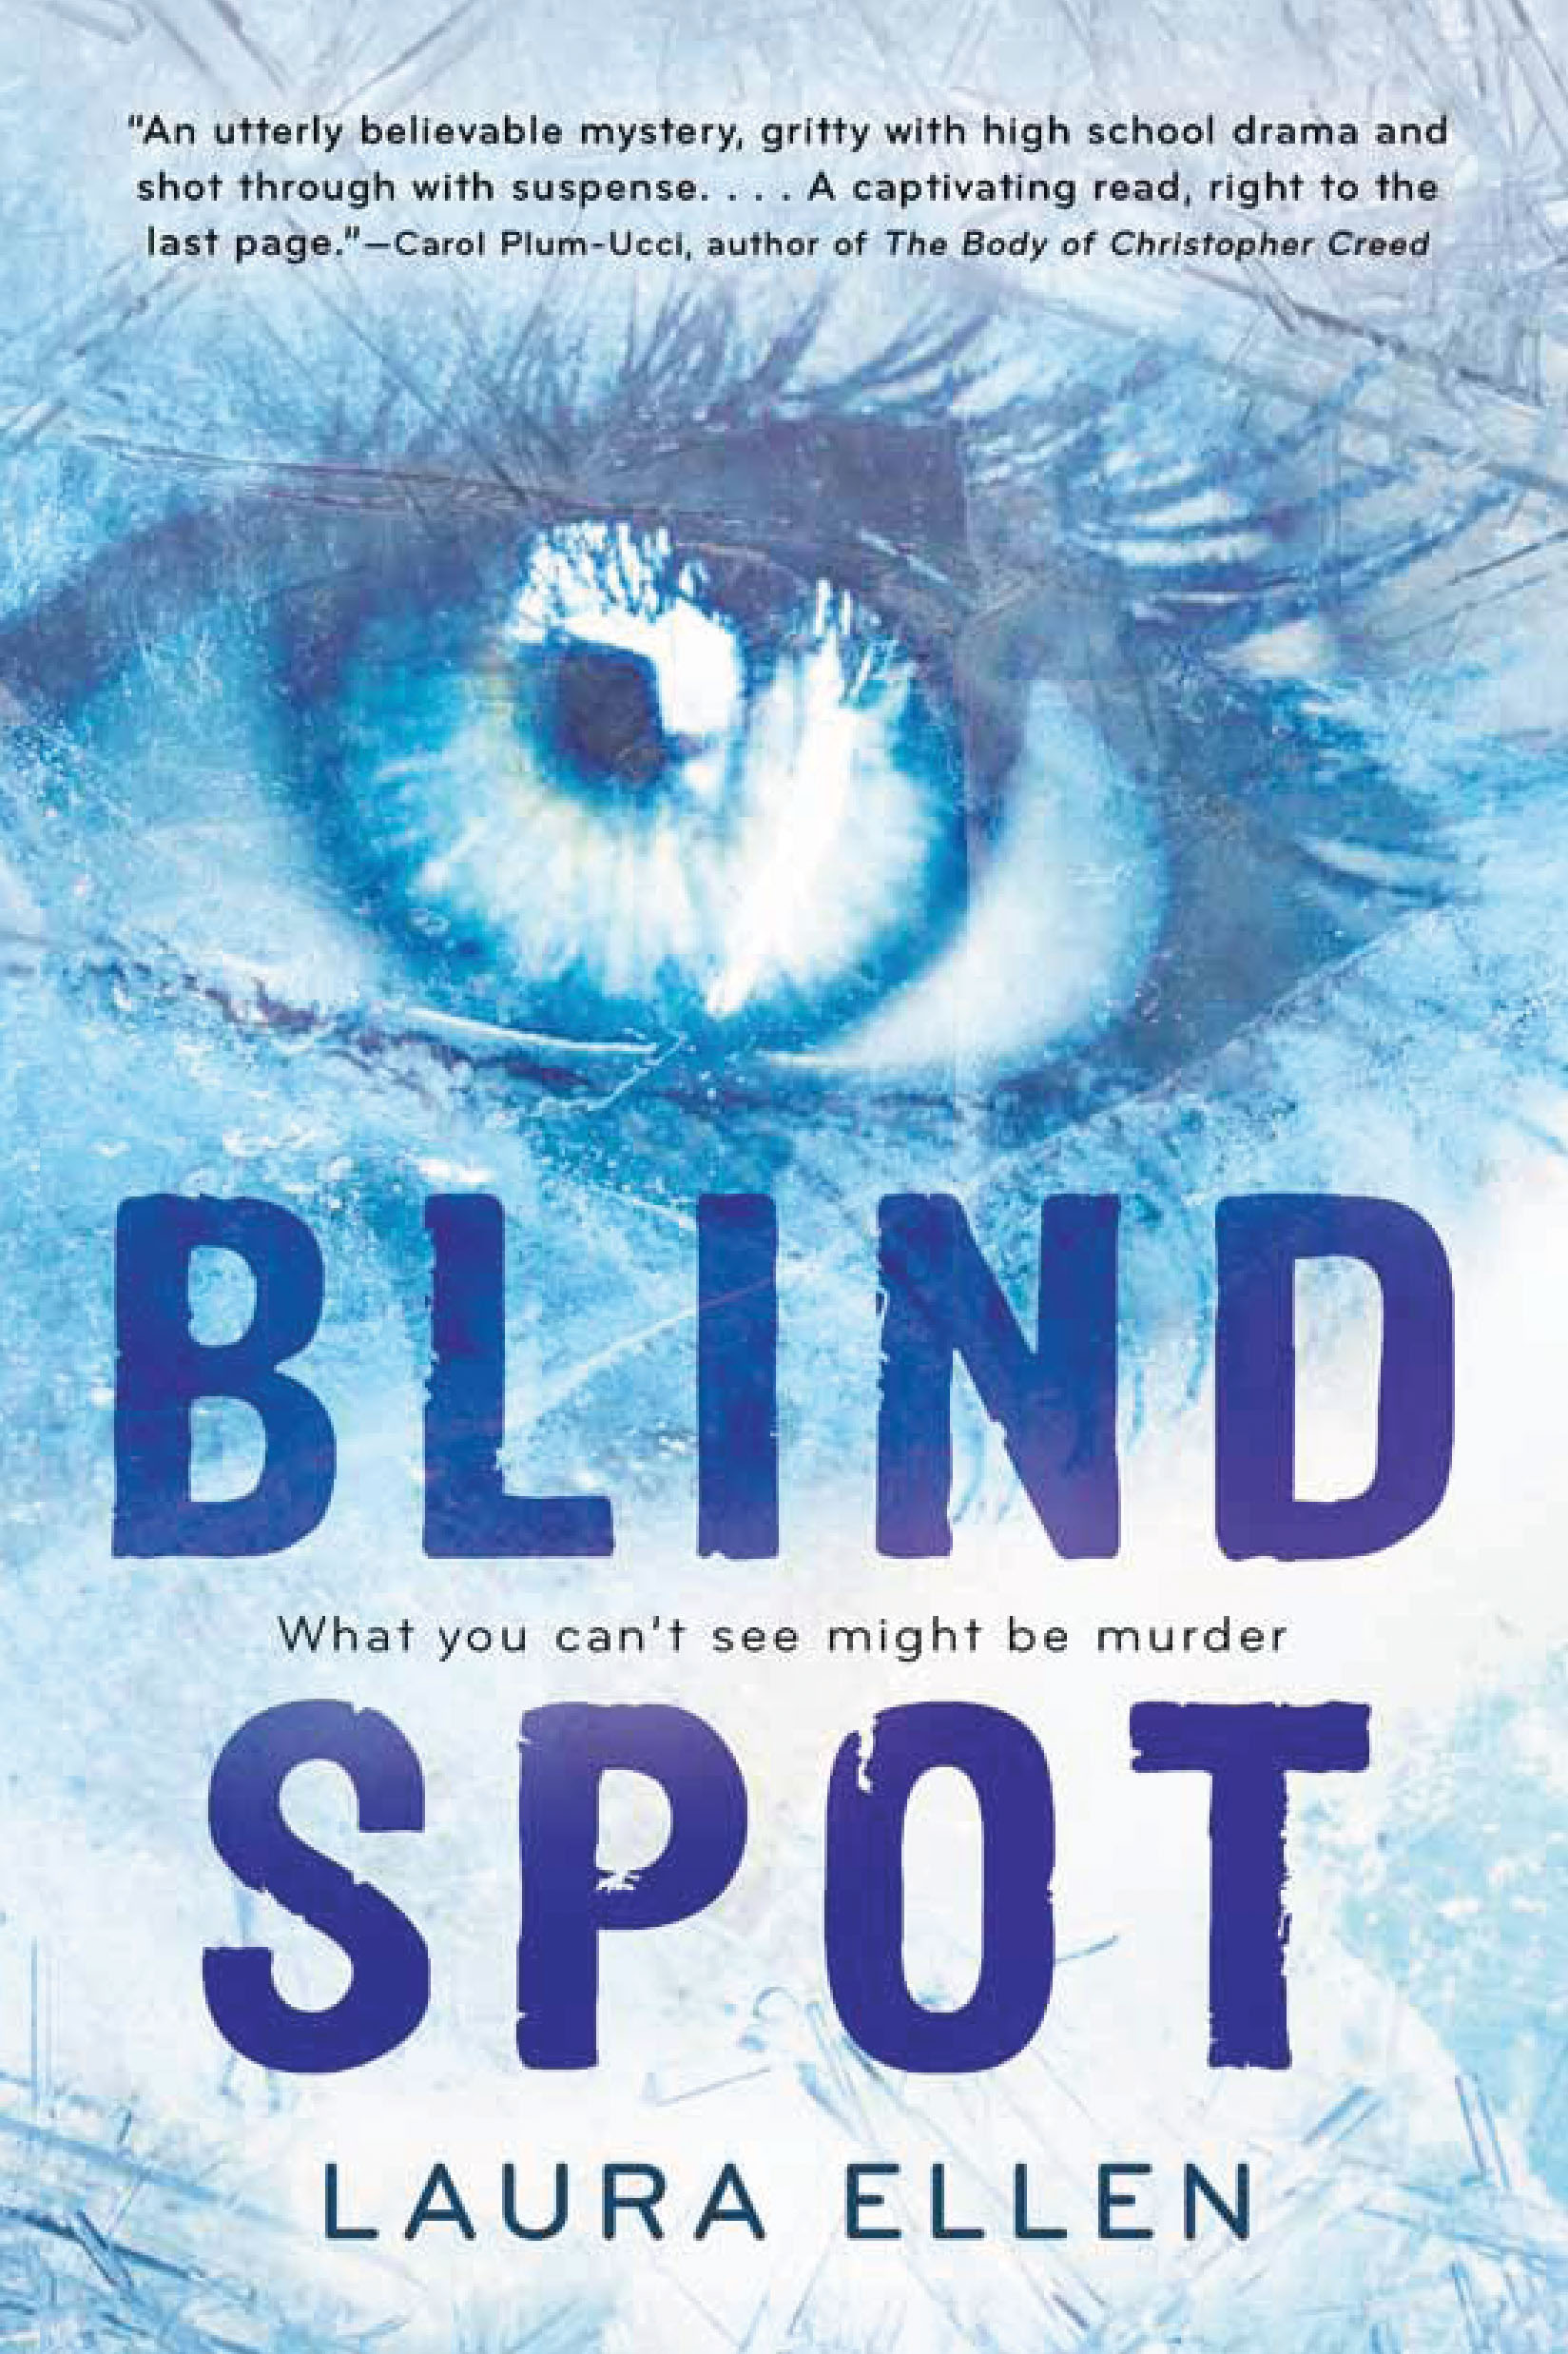 Paperback edition of Blind Spot by Laura Ellen